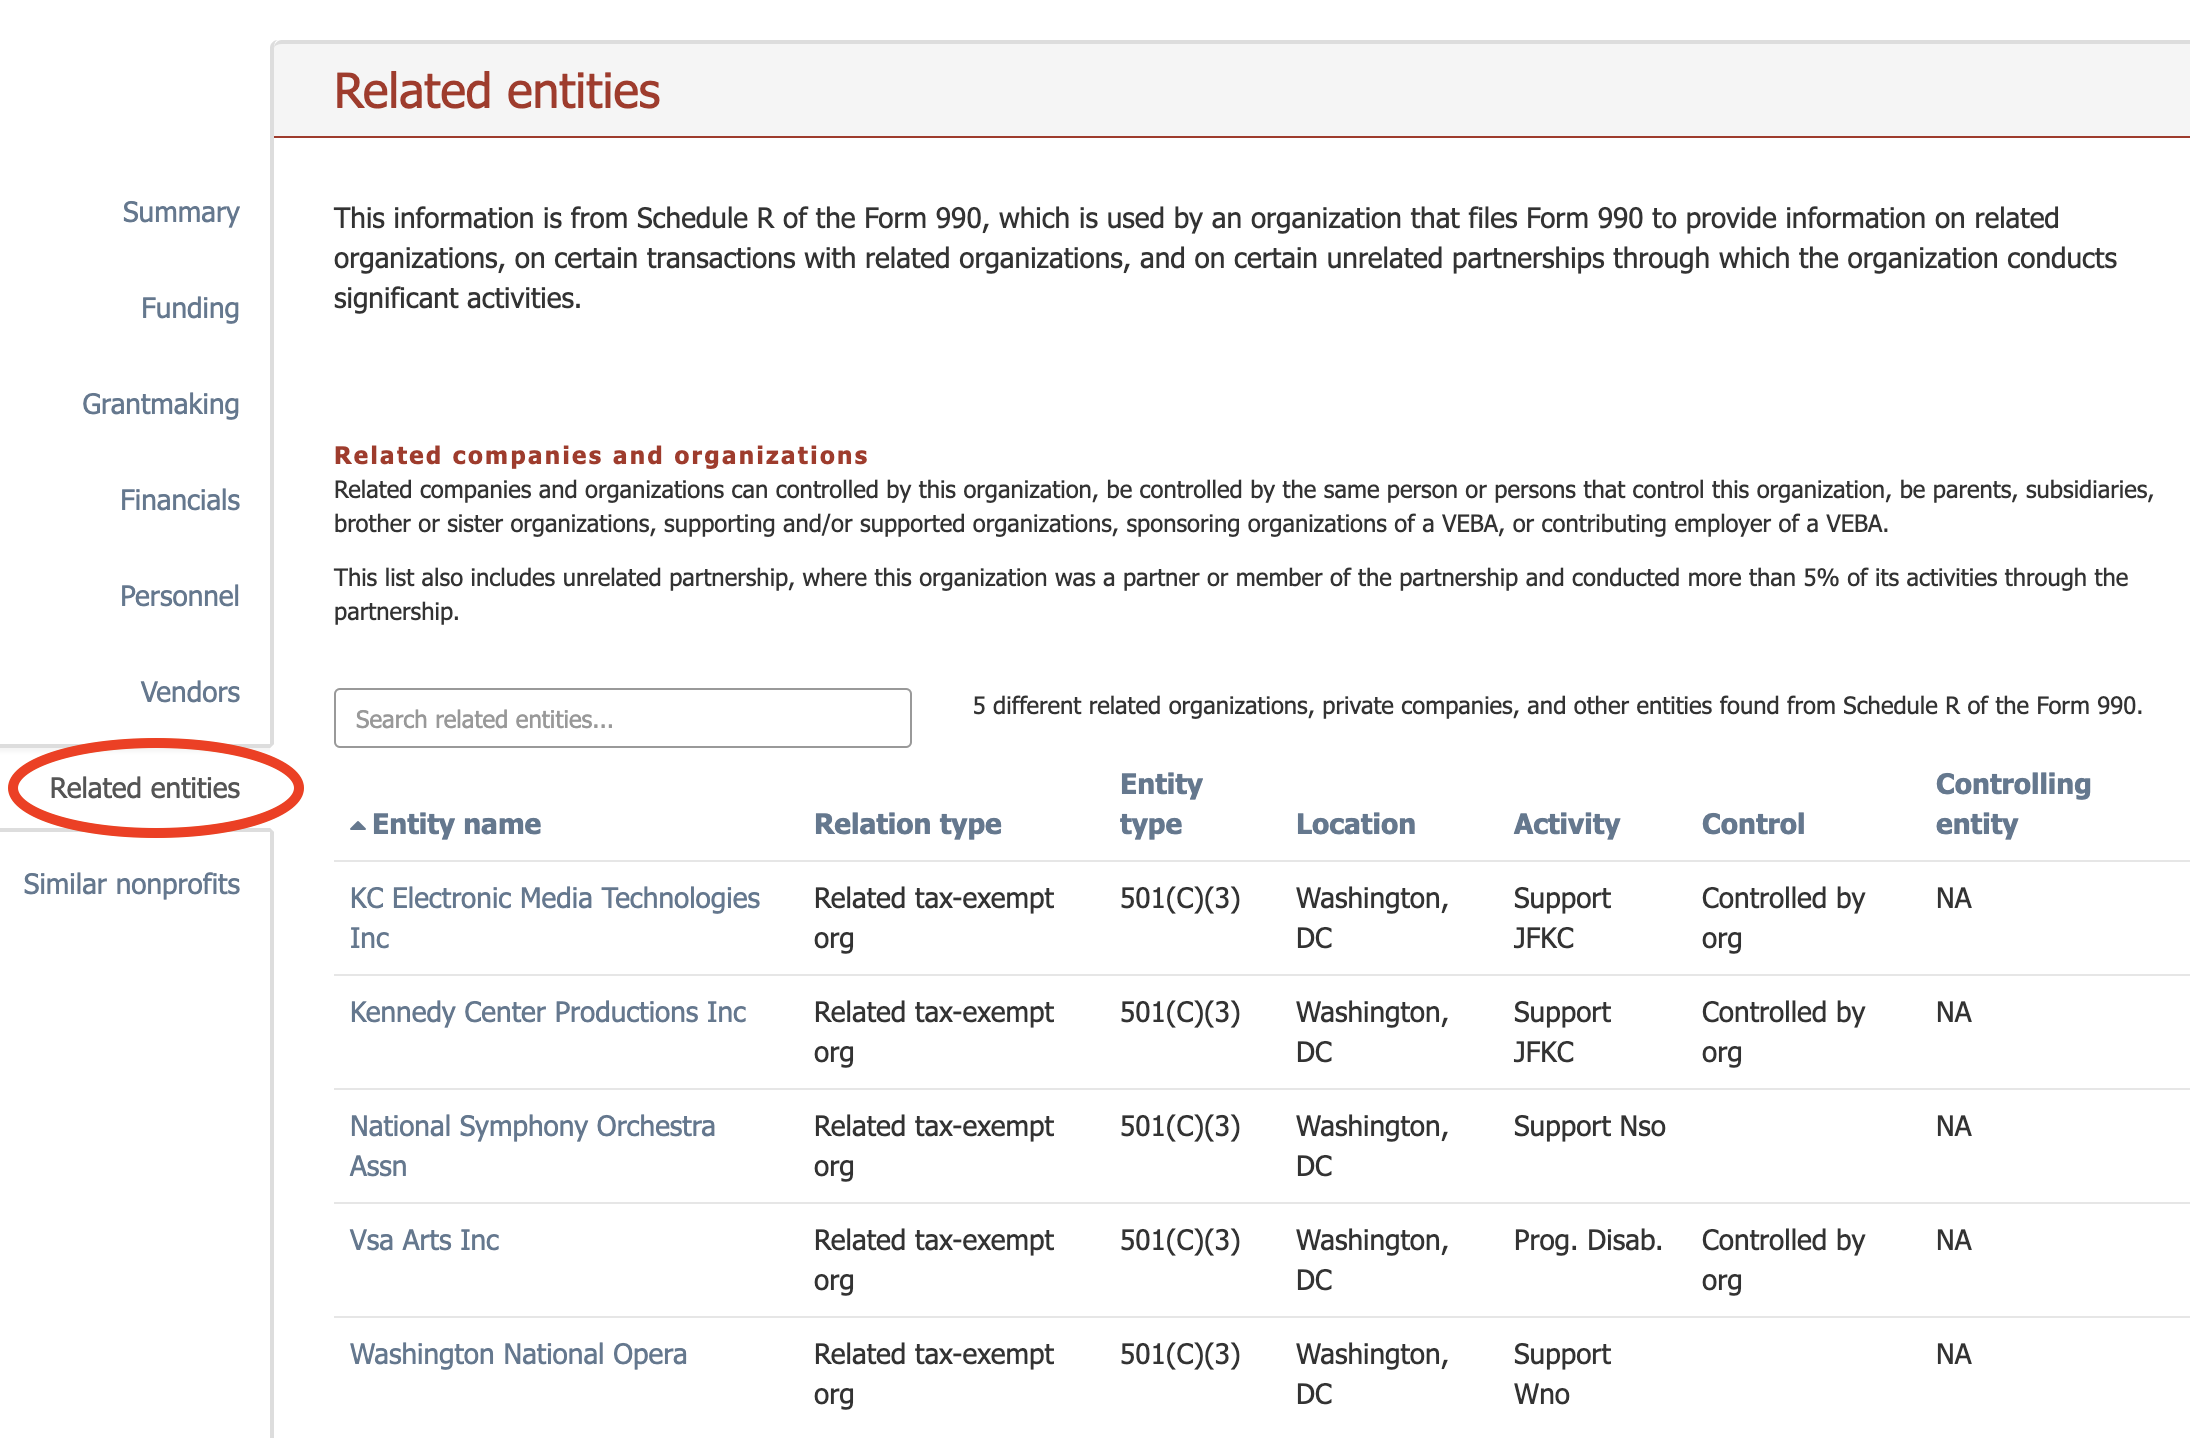 Related entities section